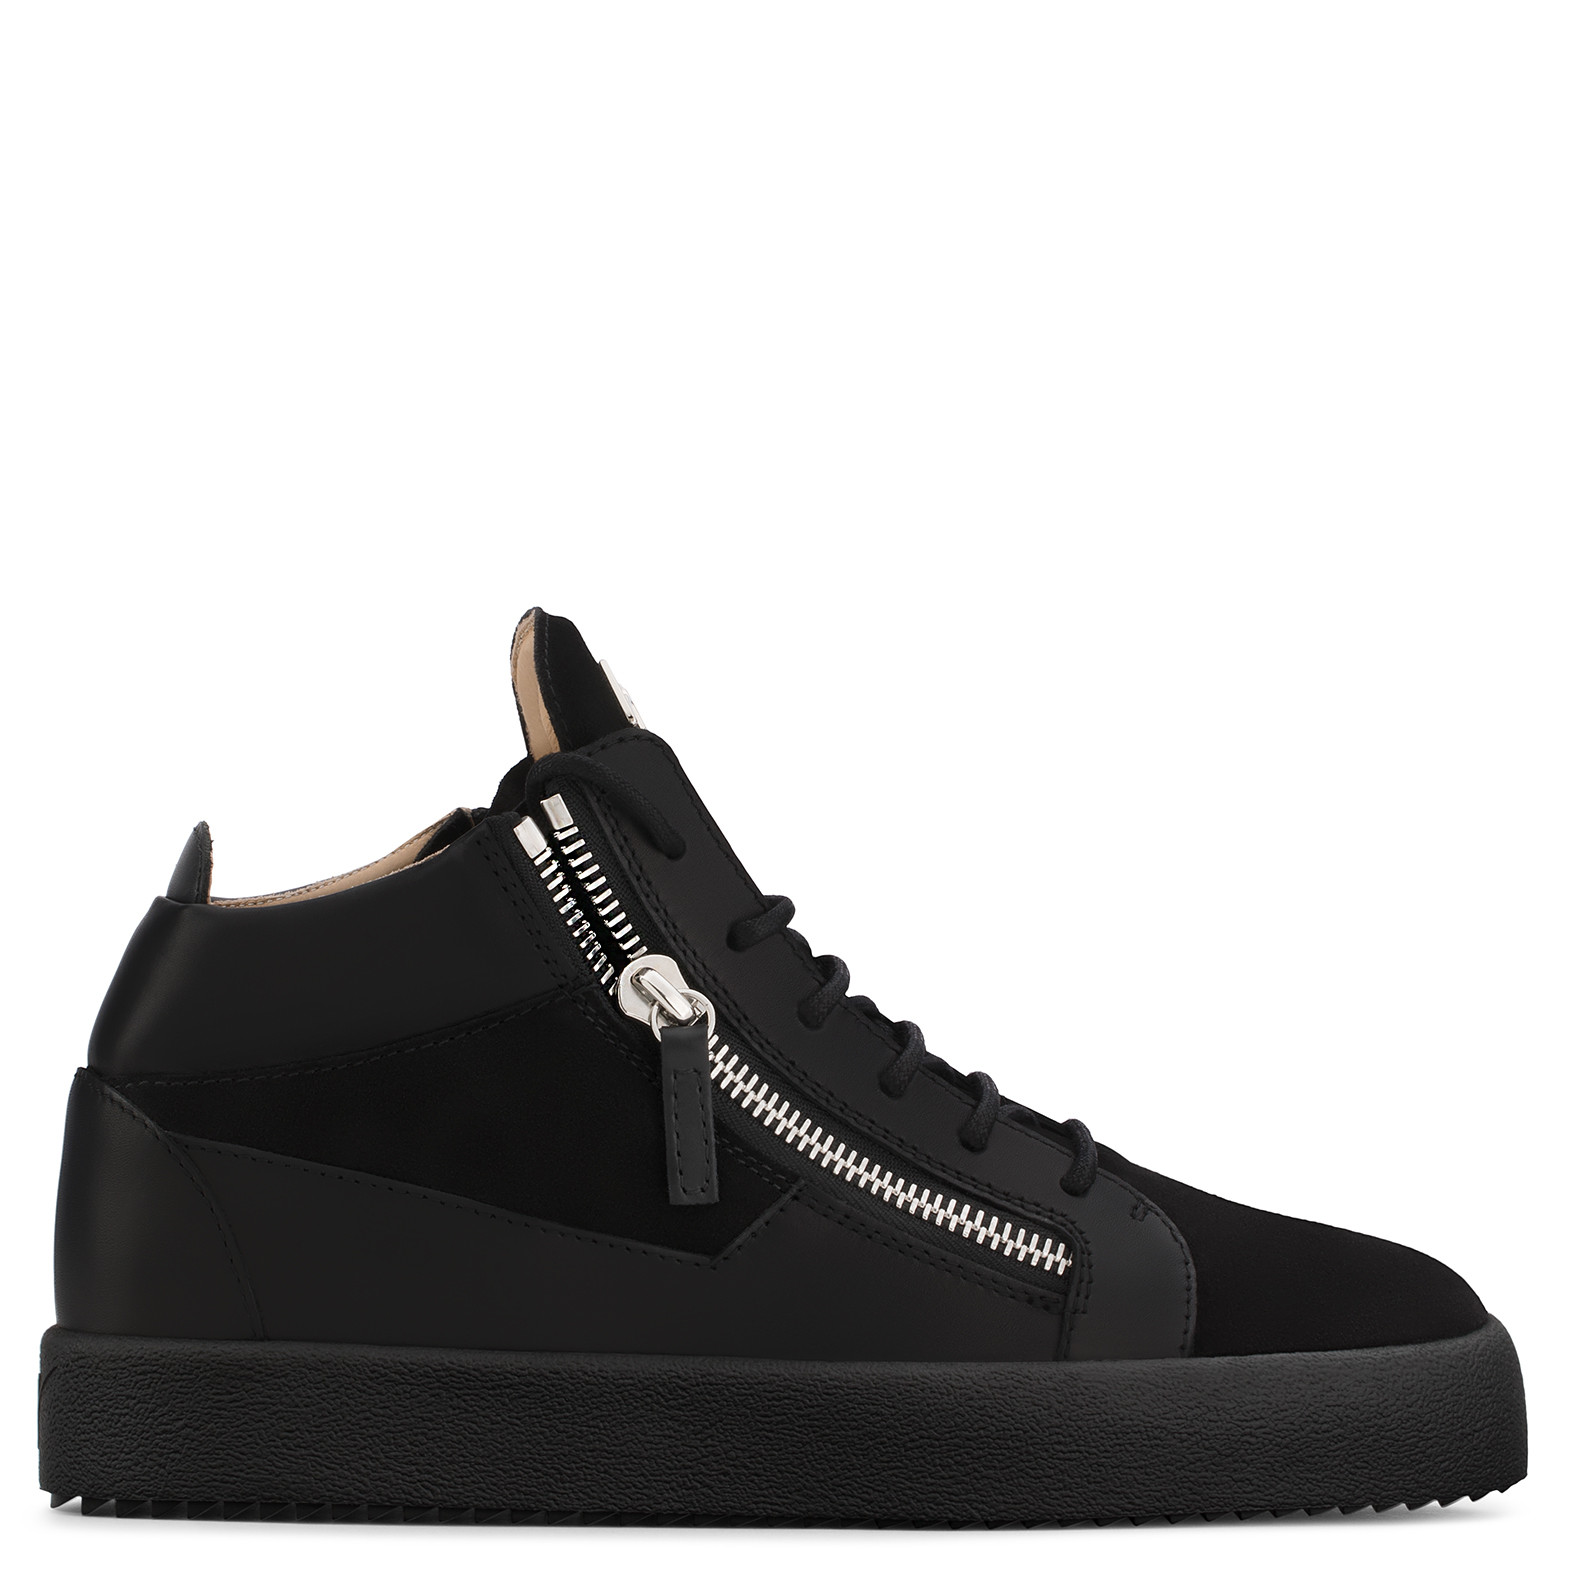 Giuseppe ZanottiBlack and white calfskin leather mid-top sneaker KRISS TvoilnZm